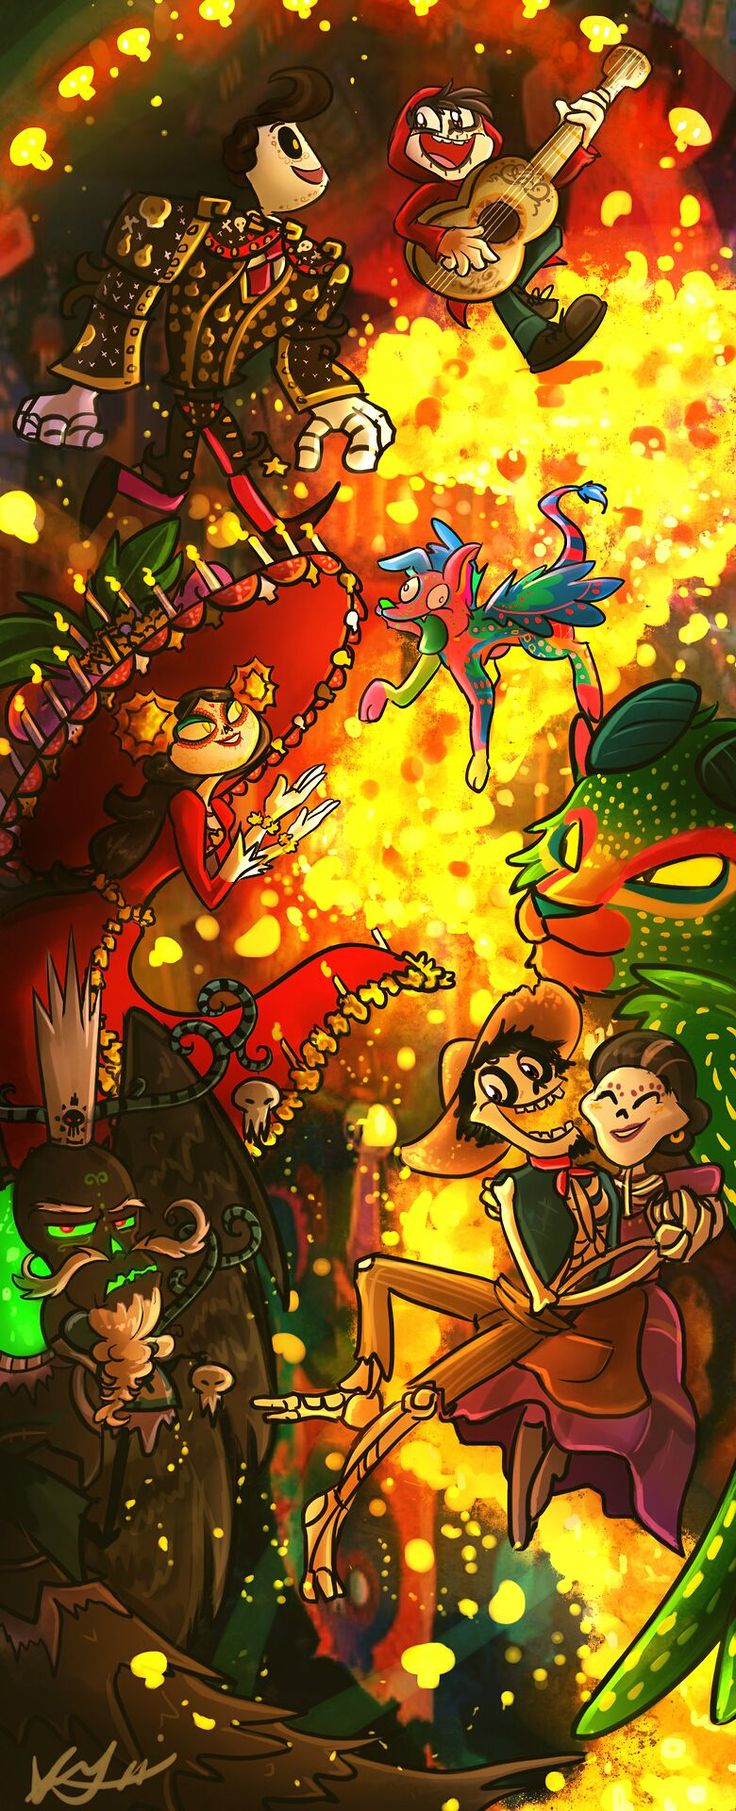 Coco, and the book of life